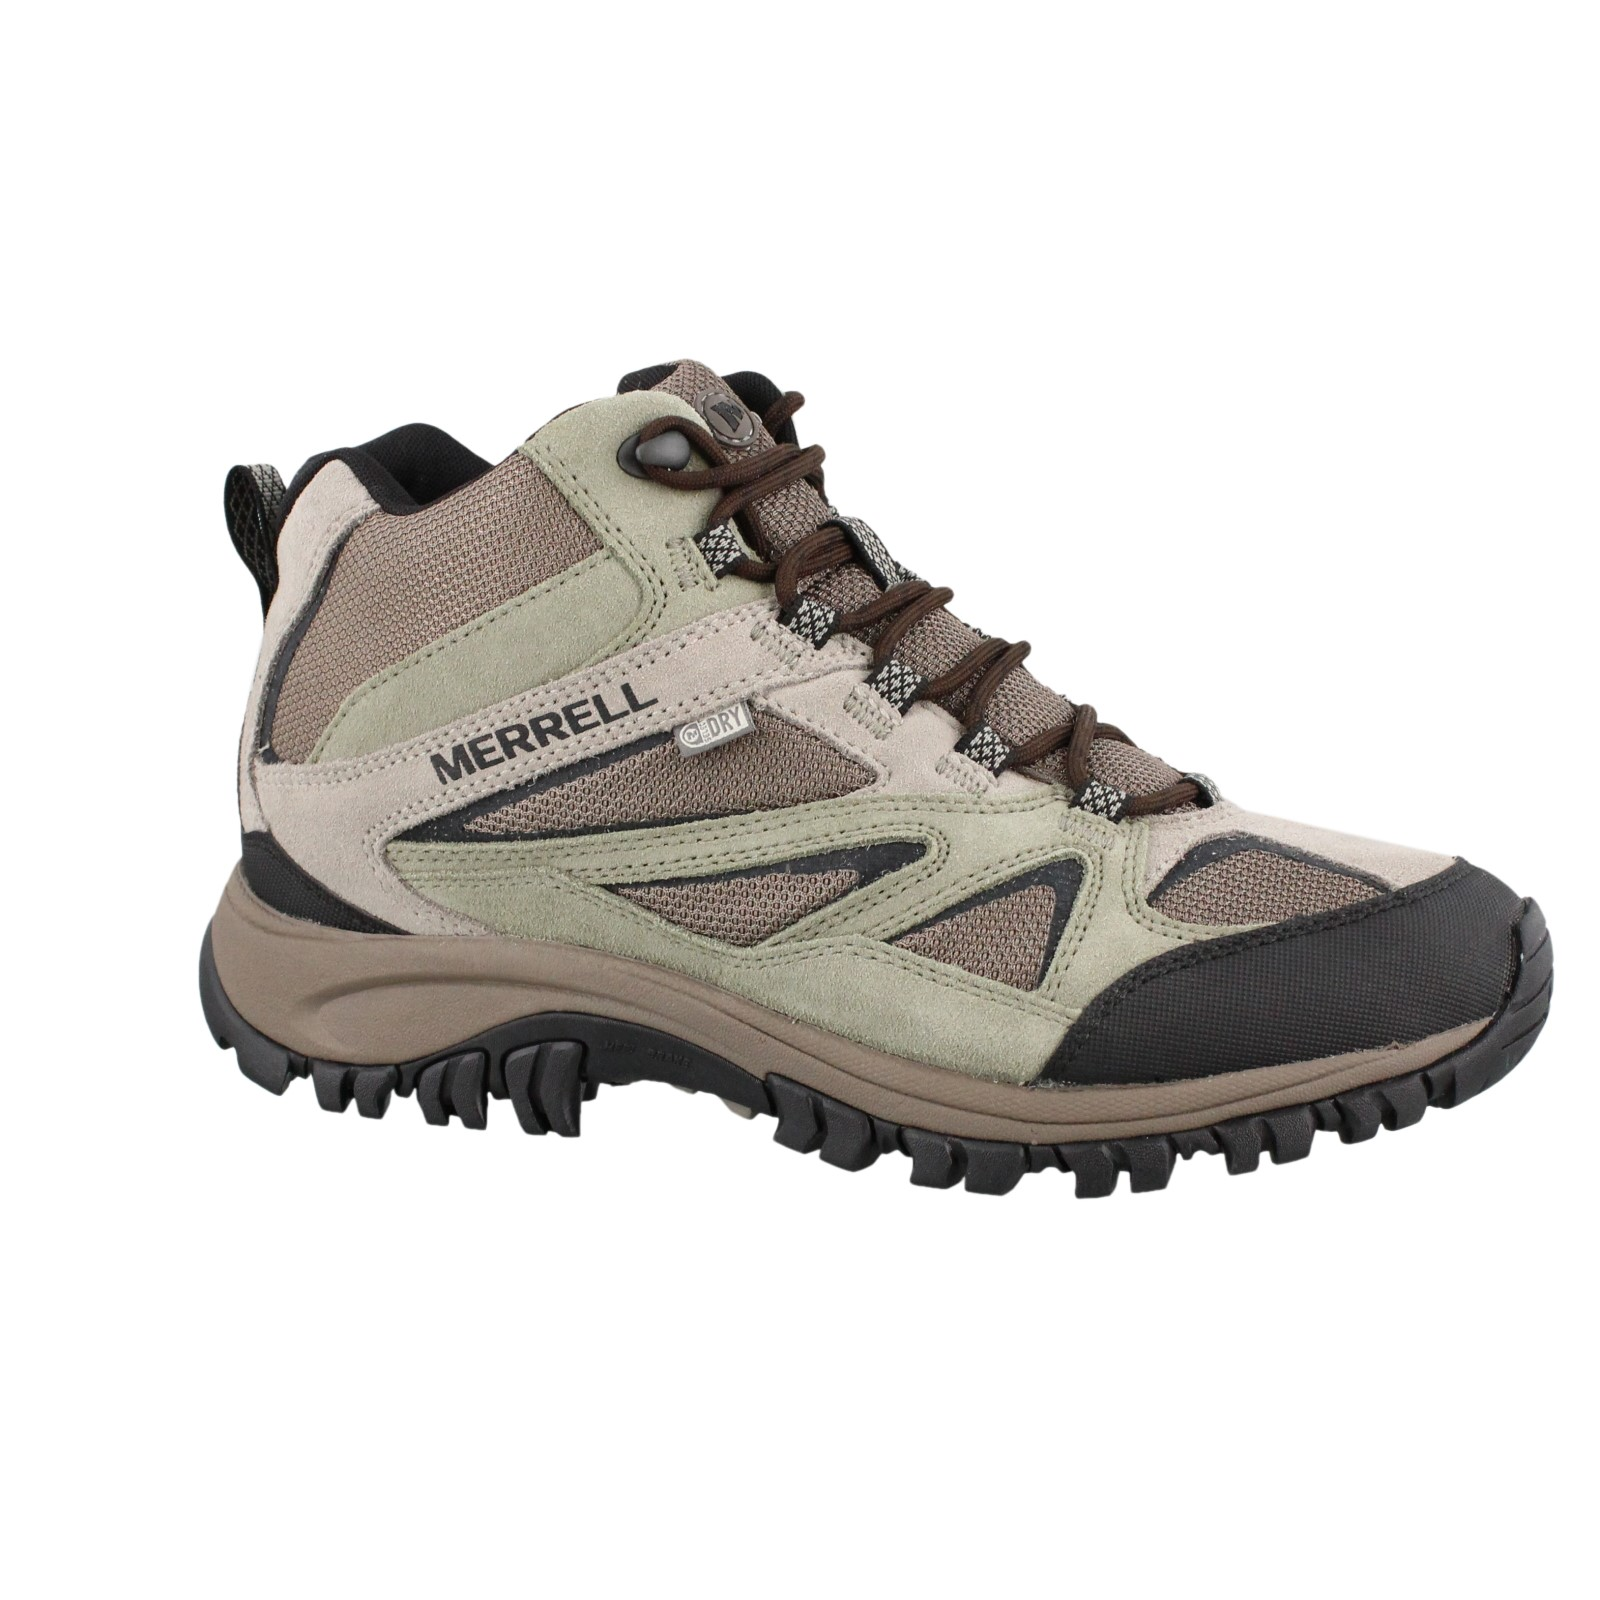 b75bd0cad6d Men's Merrell, Phoenix Bluff Mid Waterproof Hiking Shoe